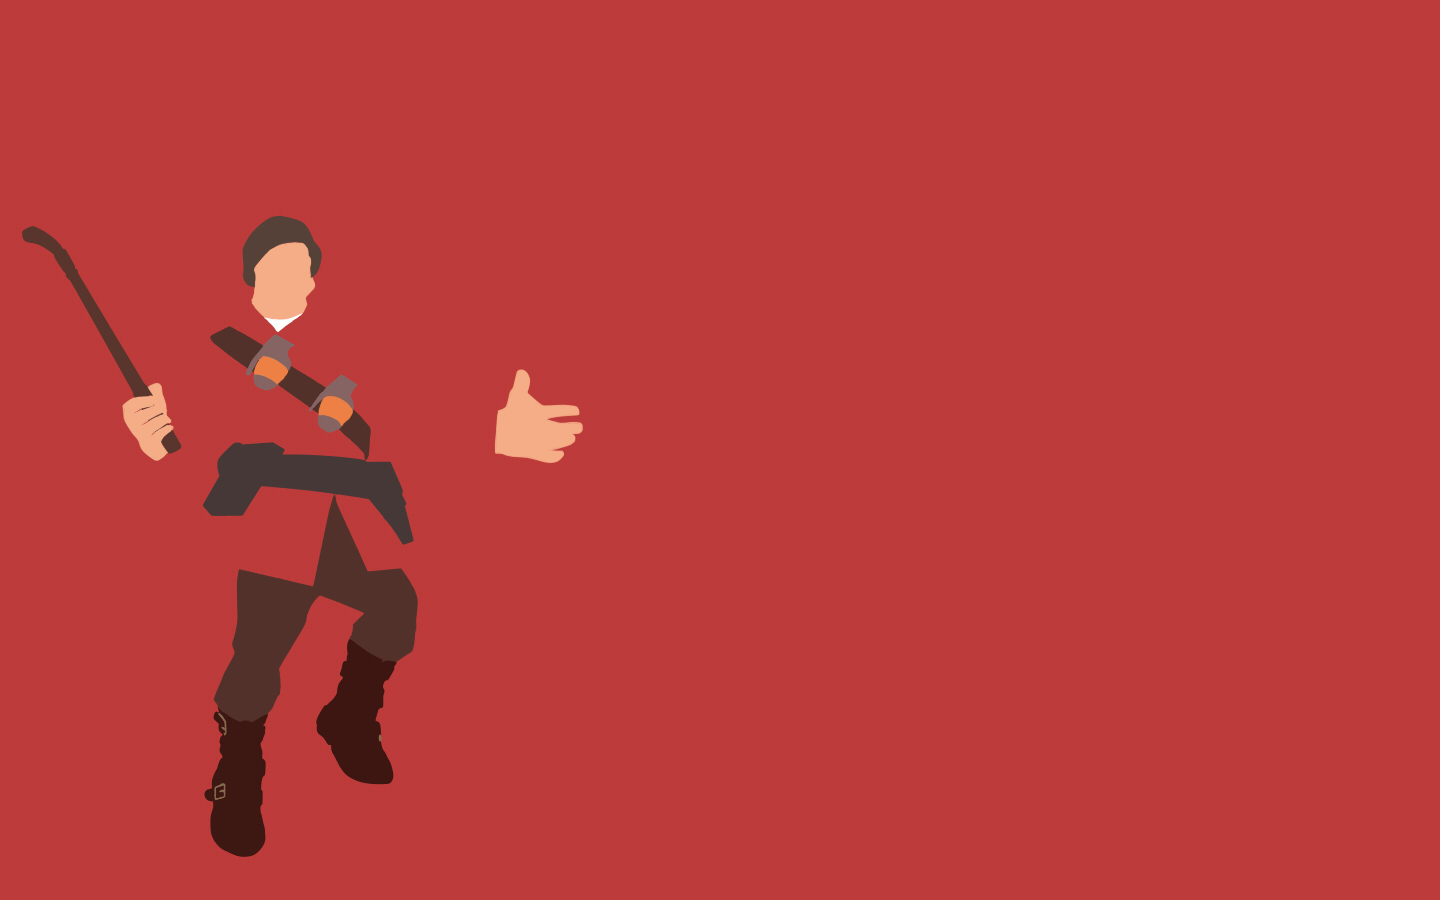 download TF2 Red Soldier Minimalist Wallpaper by bohitargep 1440x900